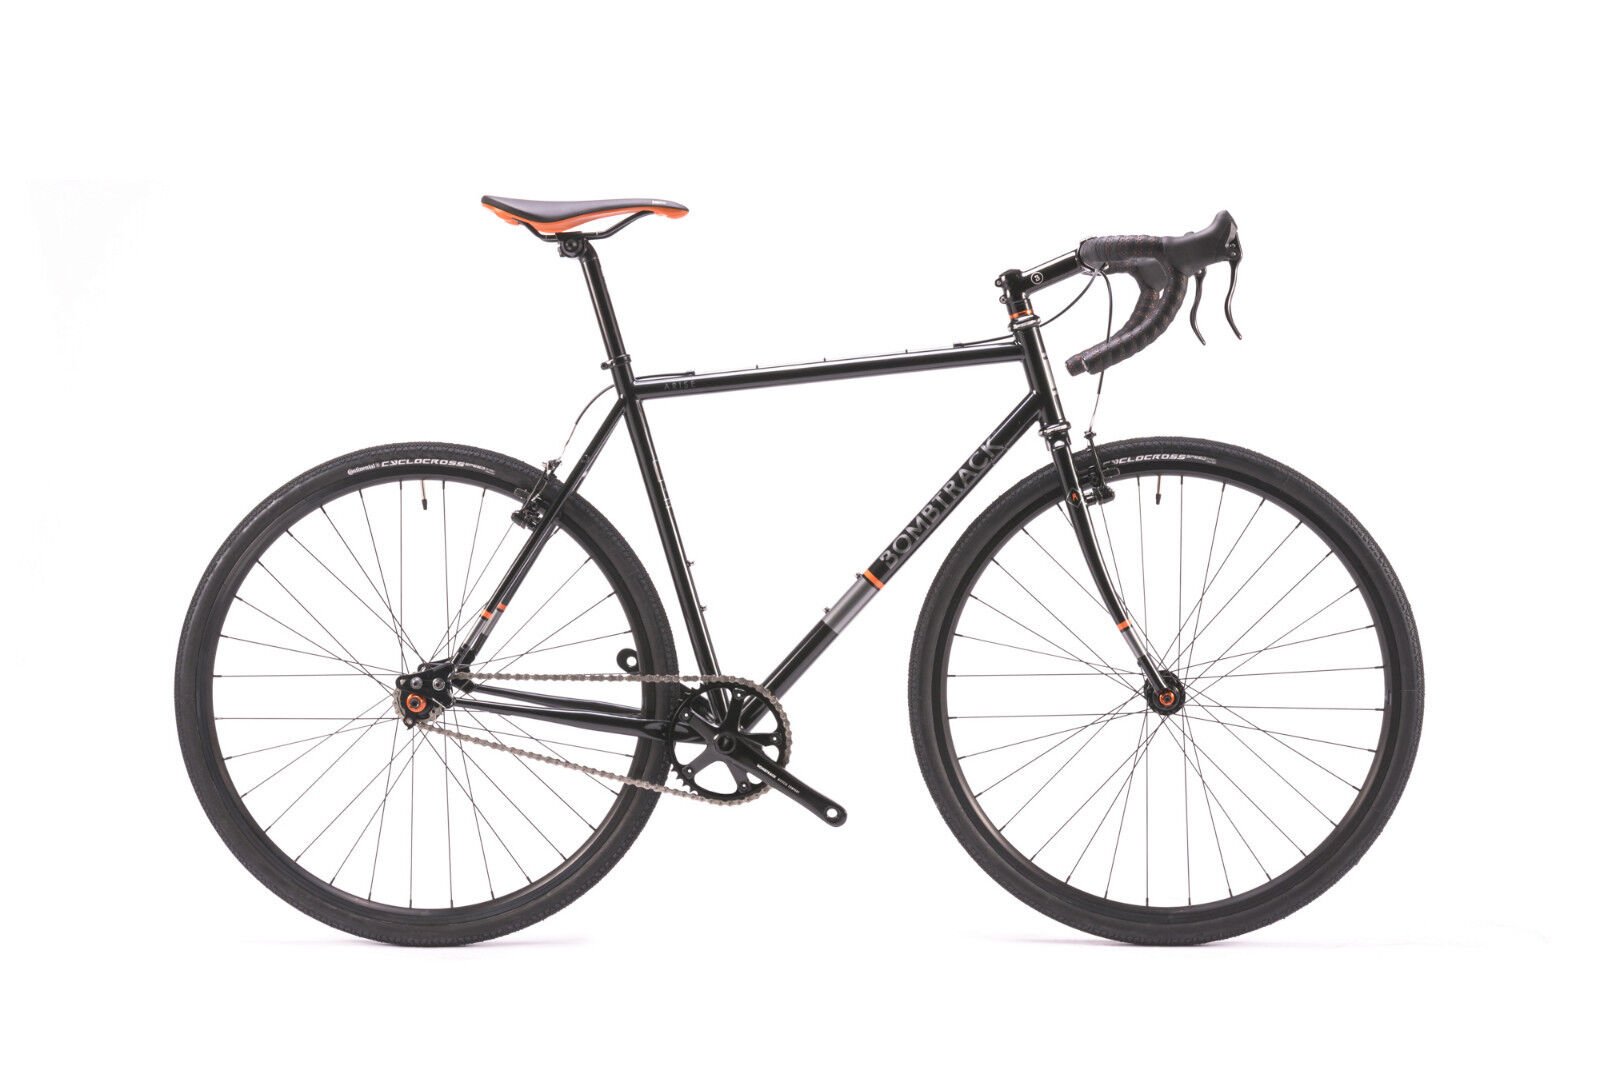 2016 Bombtrack Arise Cyclocross Bicycle, 700c, 54 cm frame